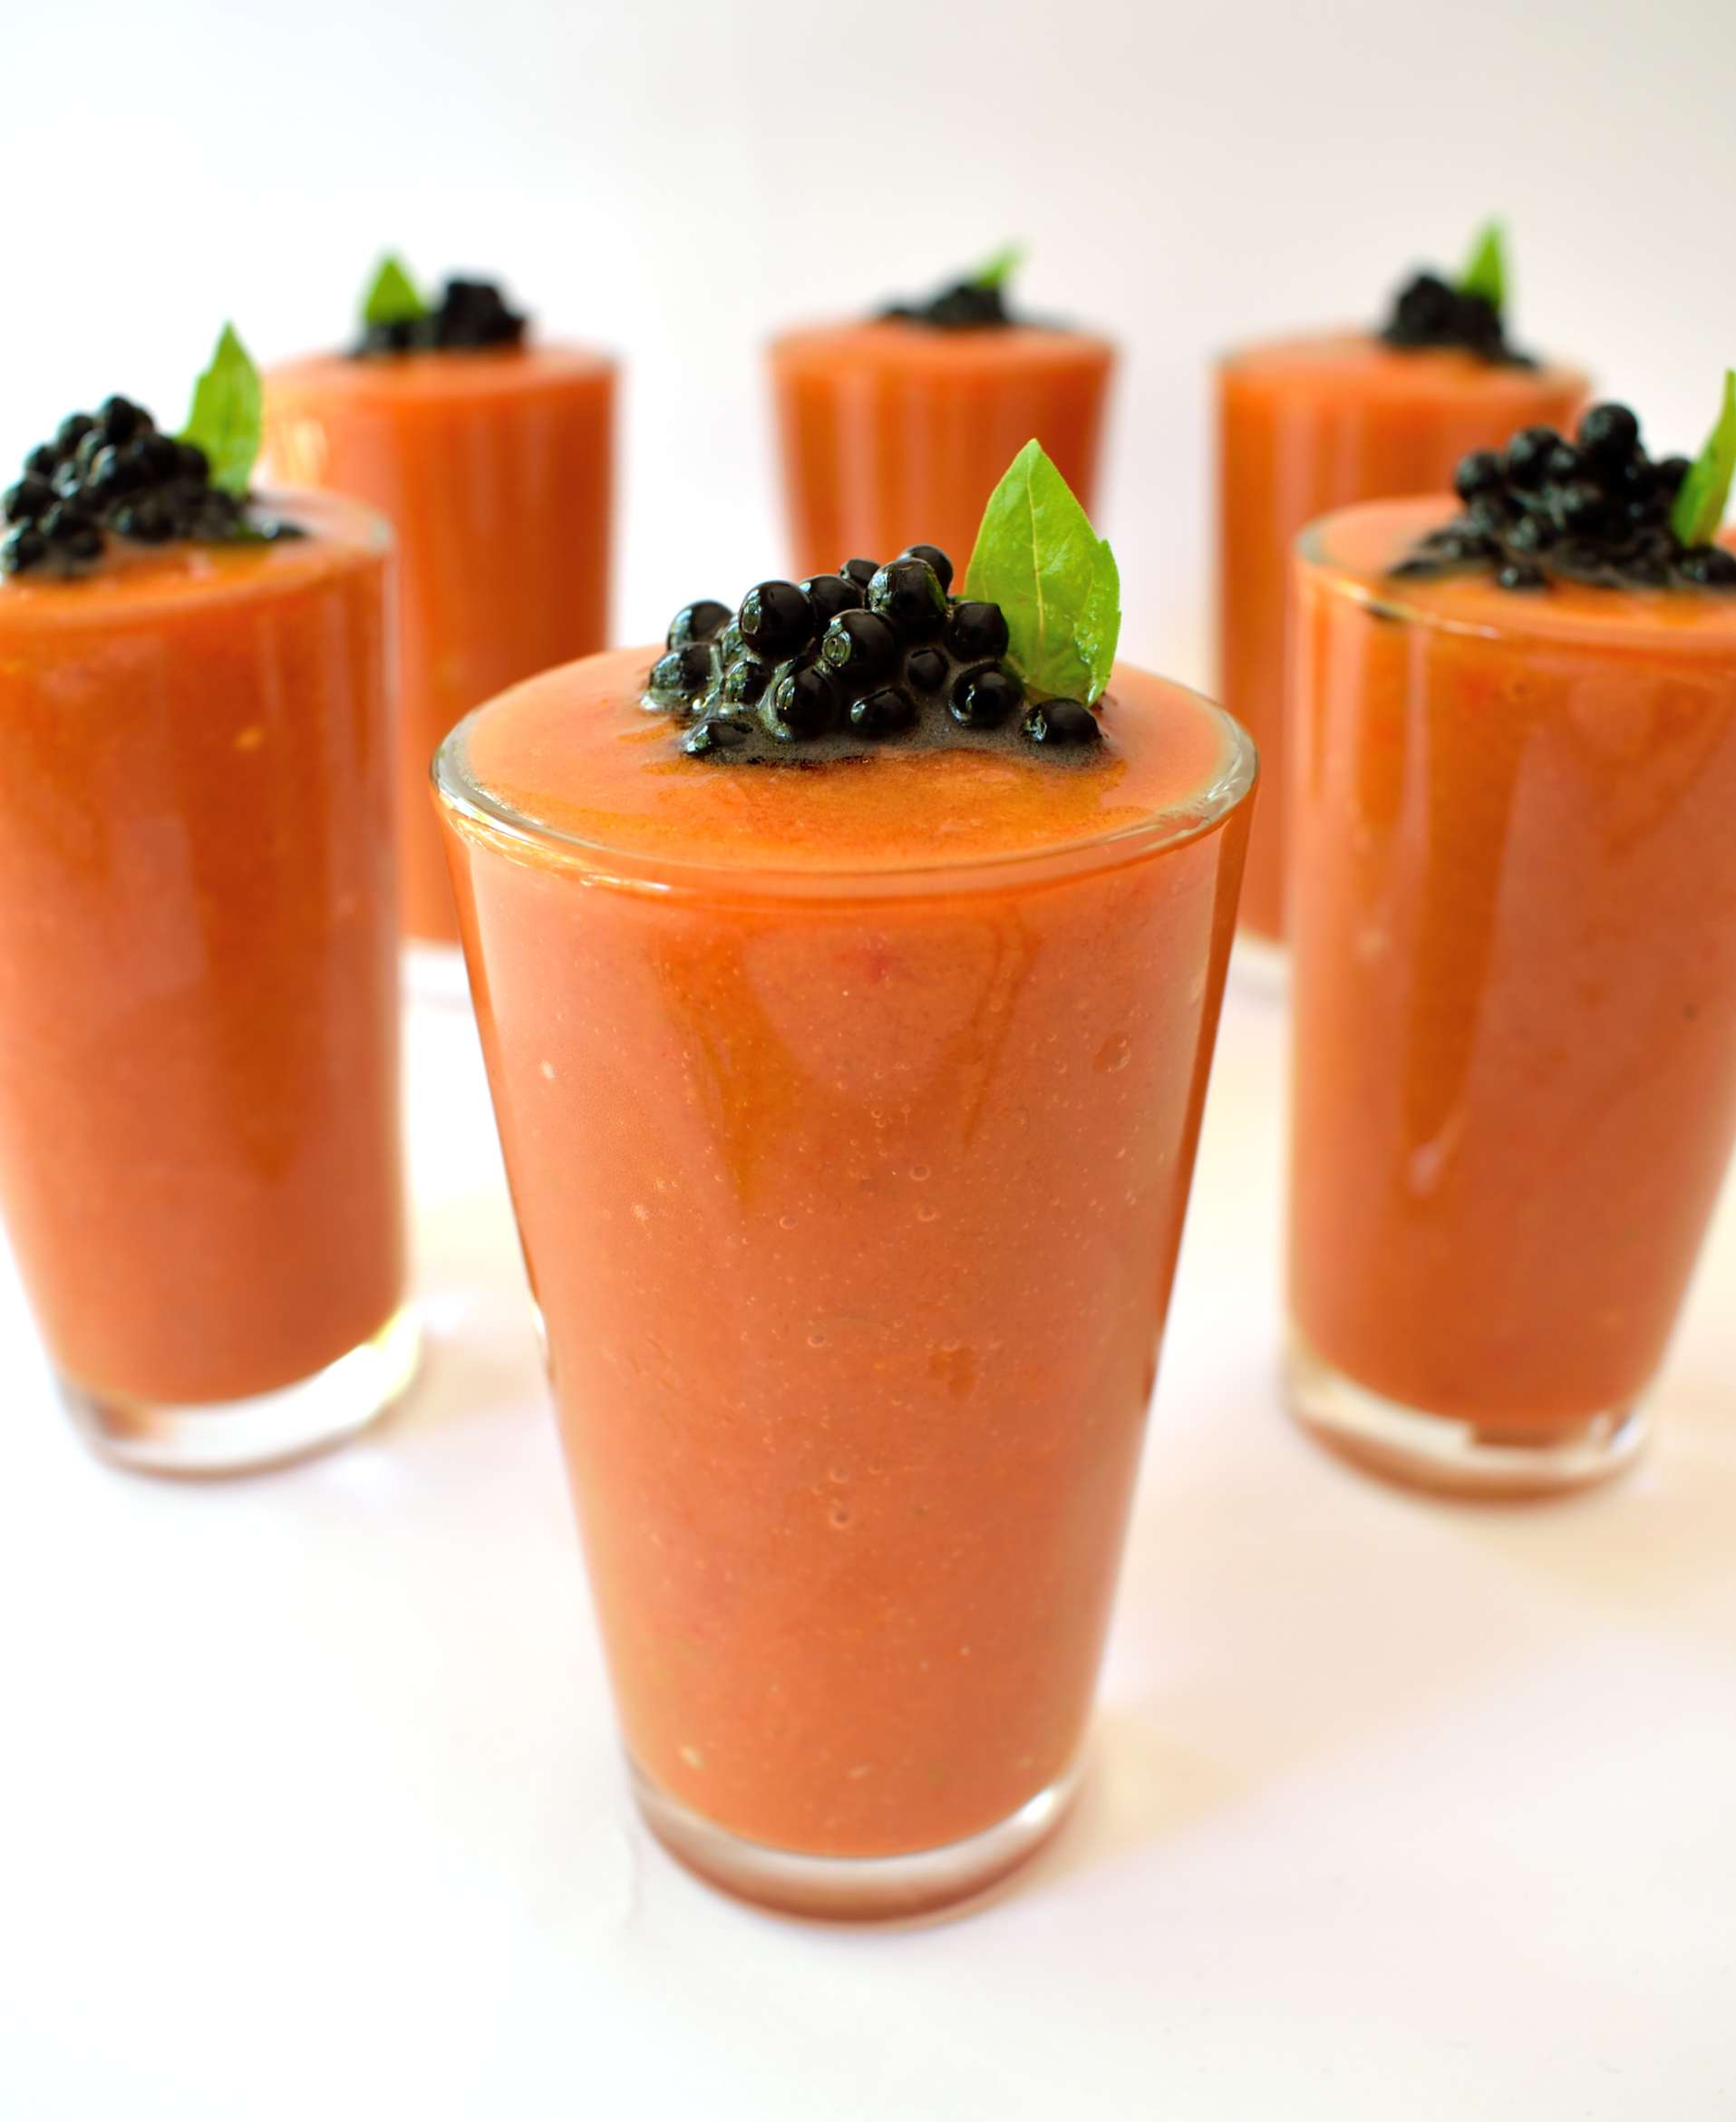 Fresh summertime gazpacho with balsamic caviar. Balsamic caviar is really easy to make and looks cool on any dish. Serve these individual portions at your next party and impress your guests!